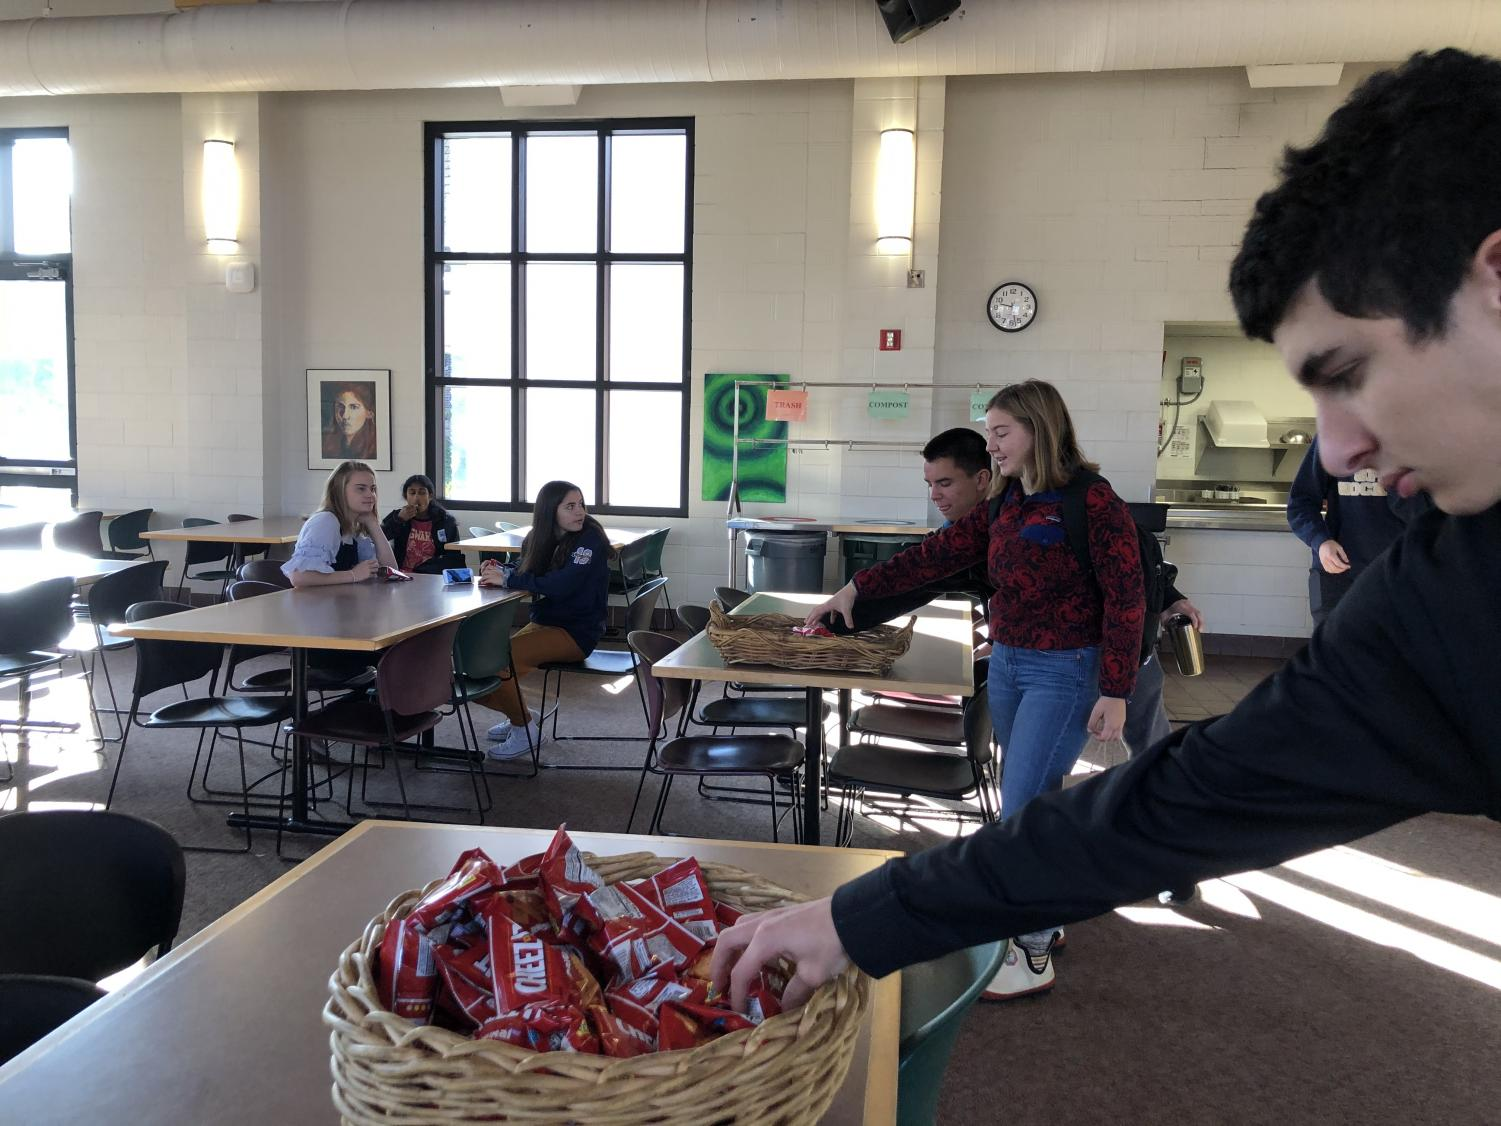 Seniors Stevie Frisch and Pia Schultz and junior Gabe Ramirez grab snack. The new setup features multiple snack baskets at tables in the cafeteria.